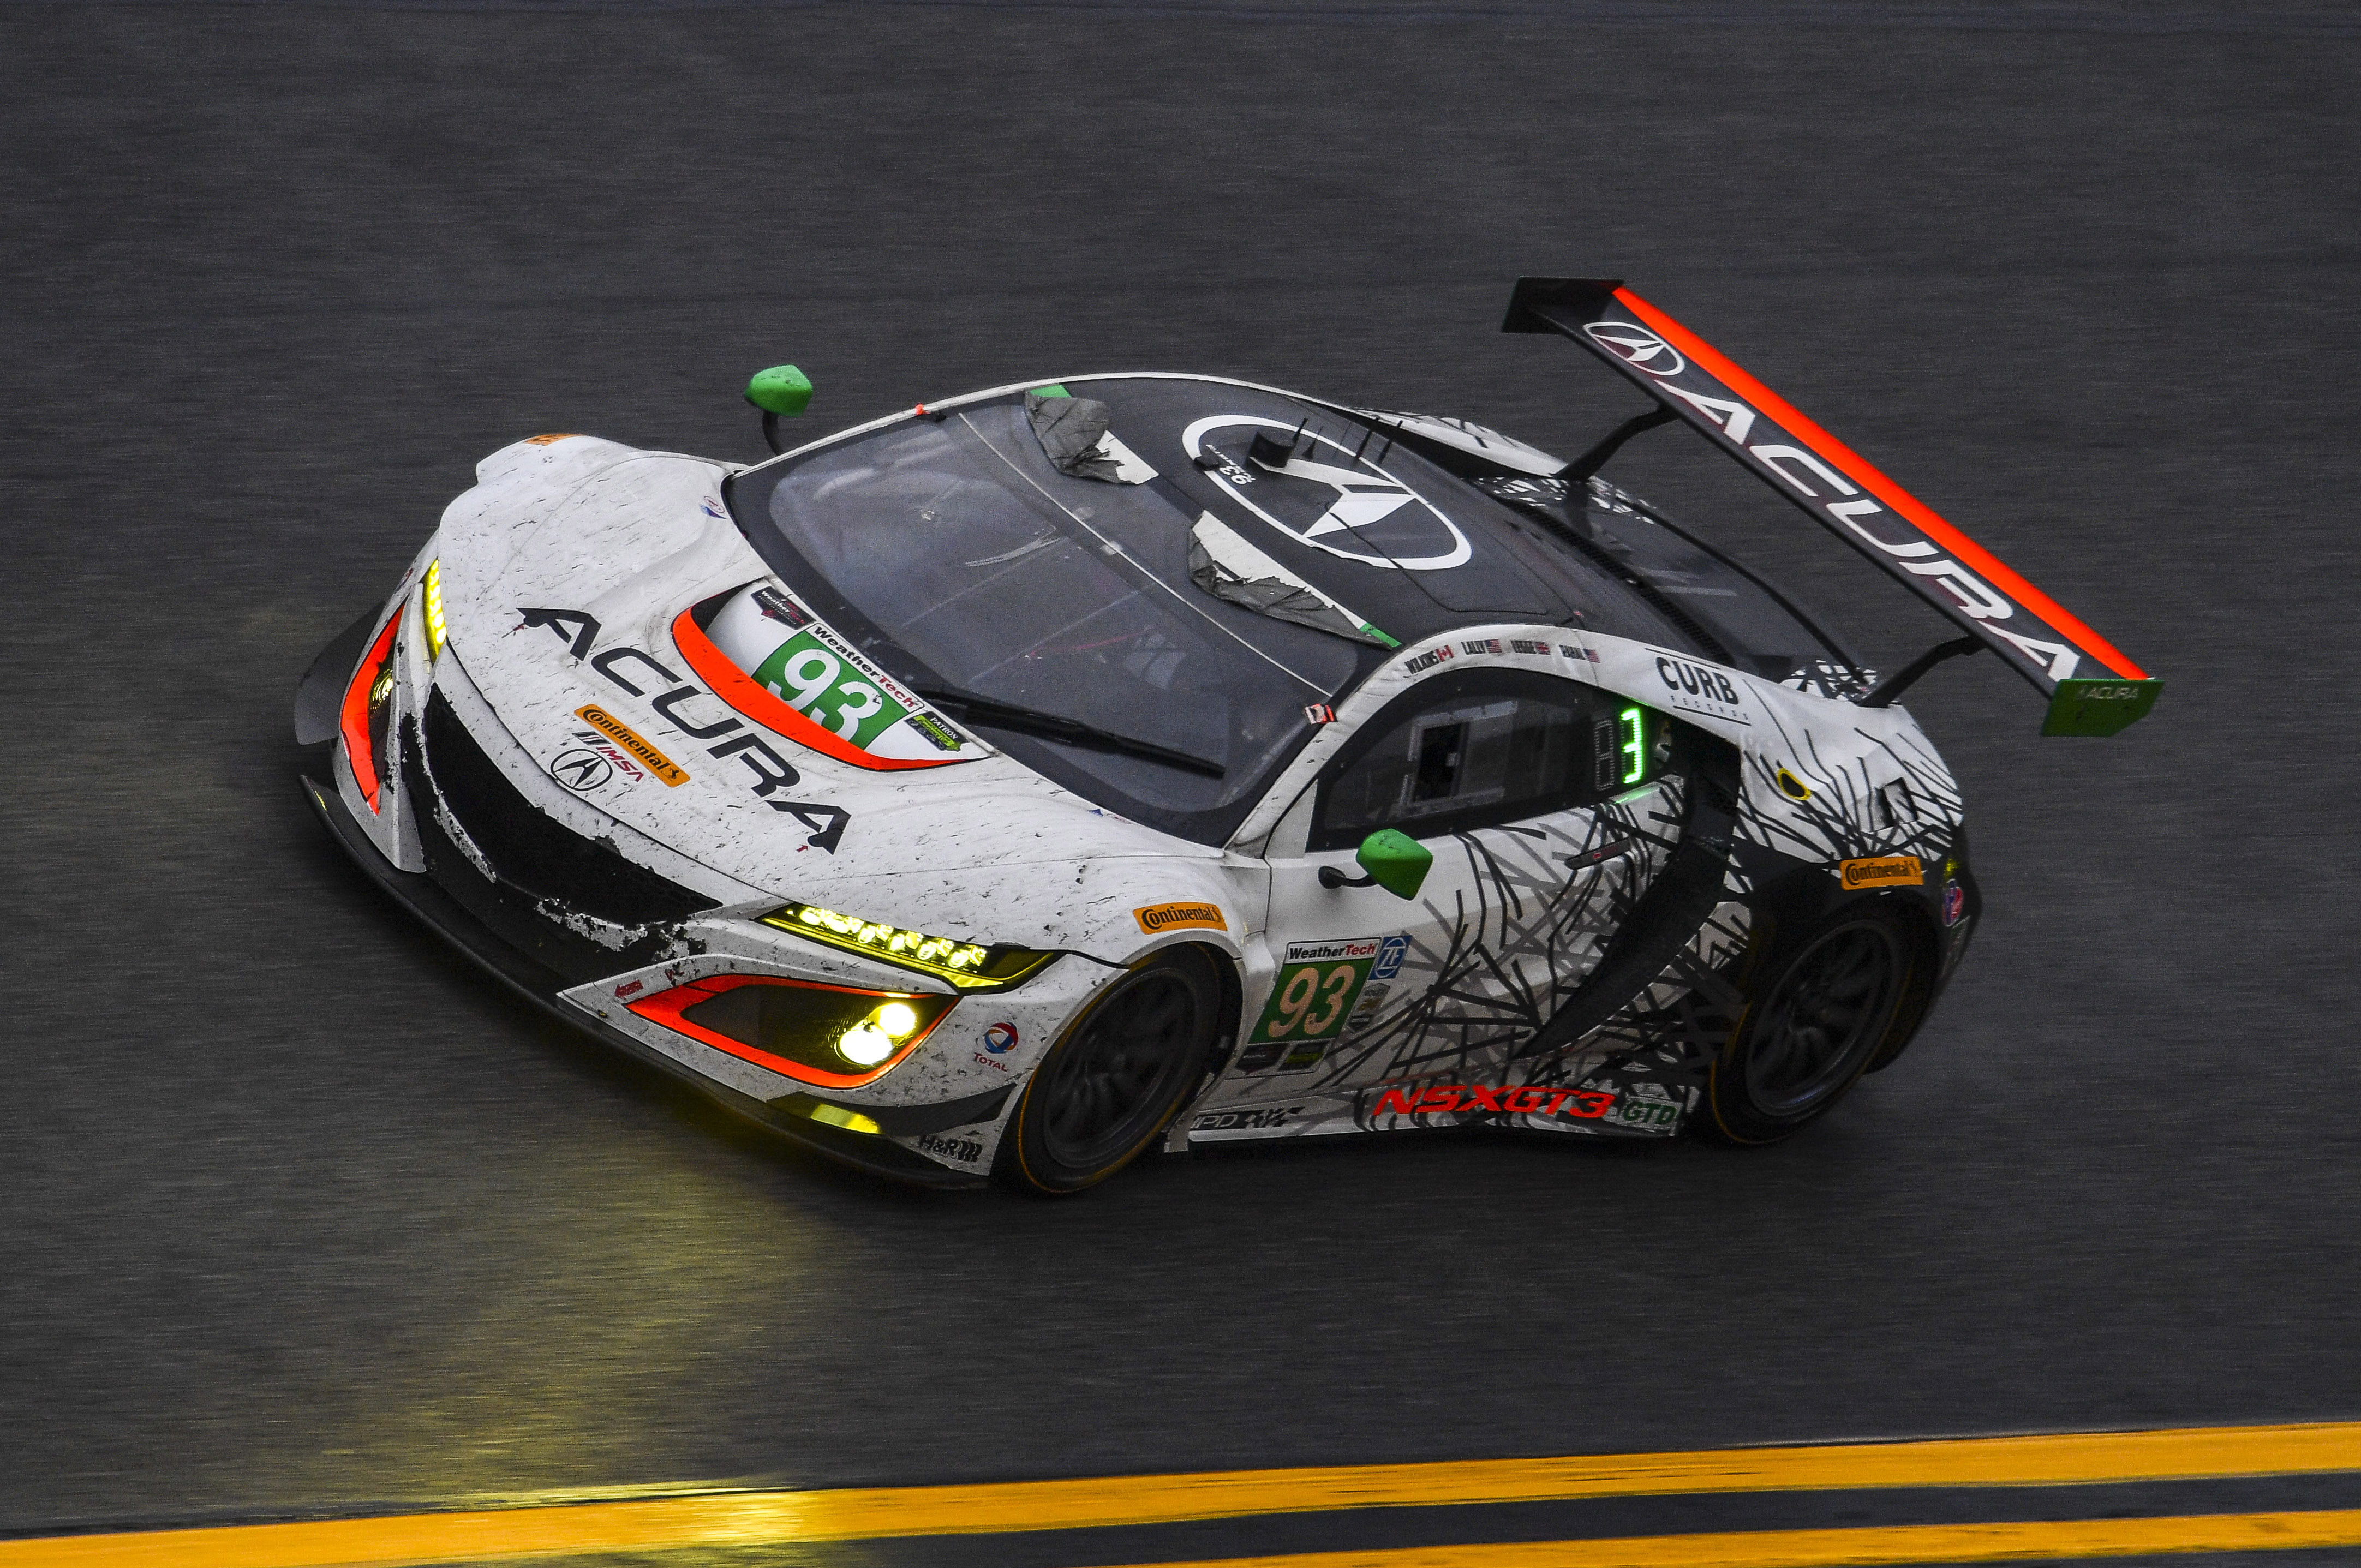 13 Things We Learned About the Acura NSX GT3 Race Car | Automobile